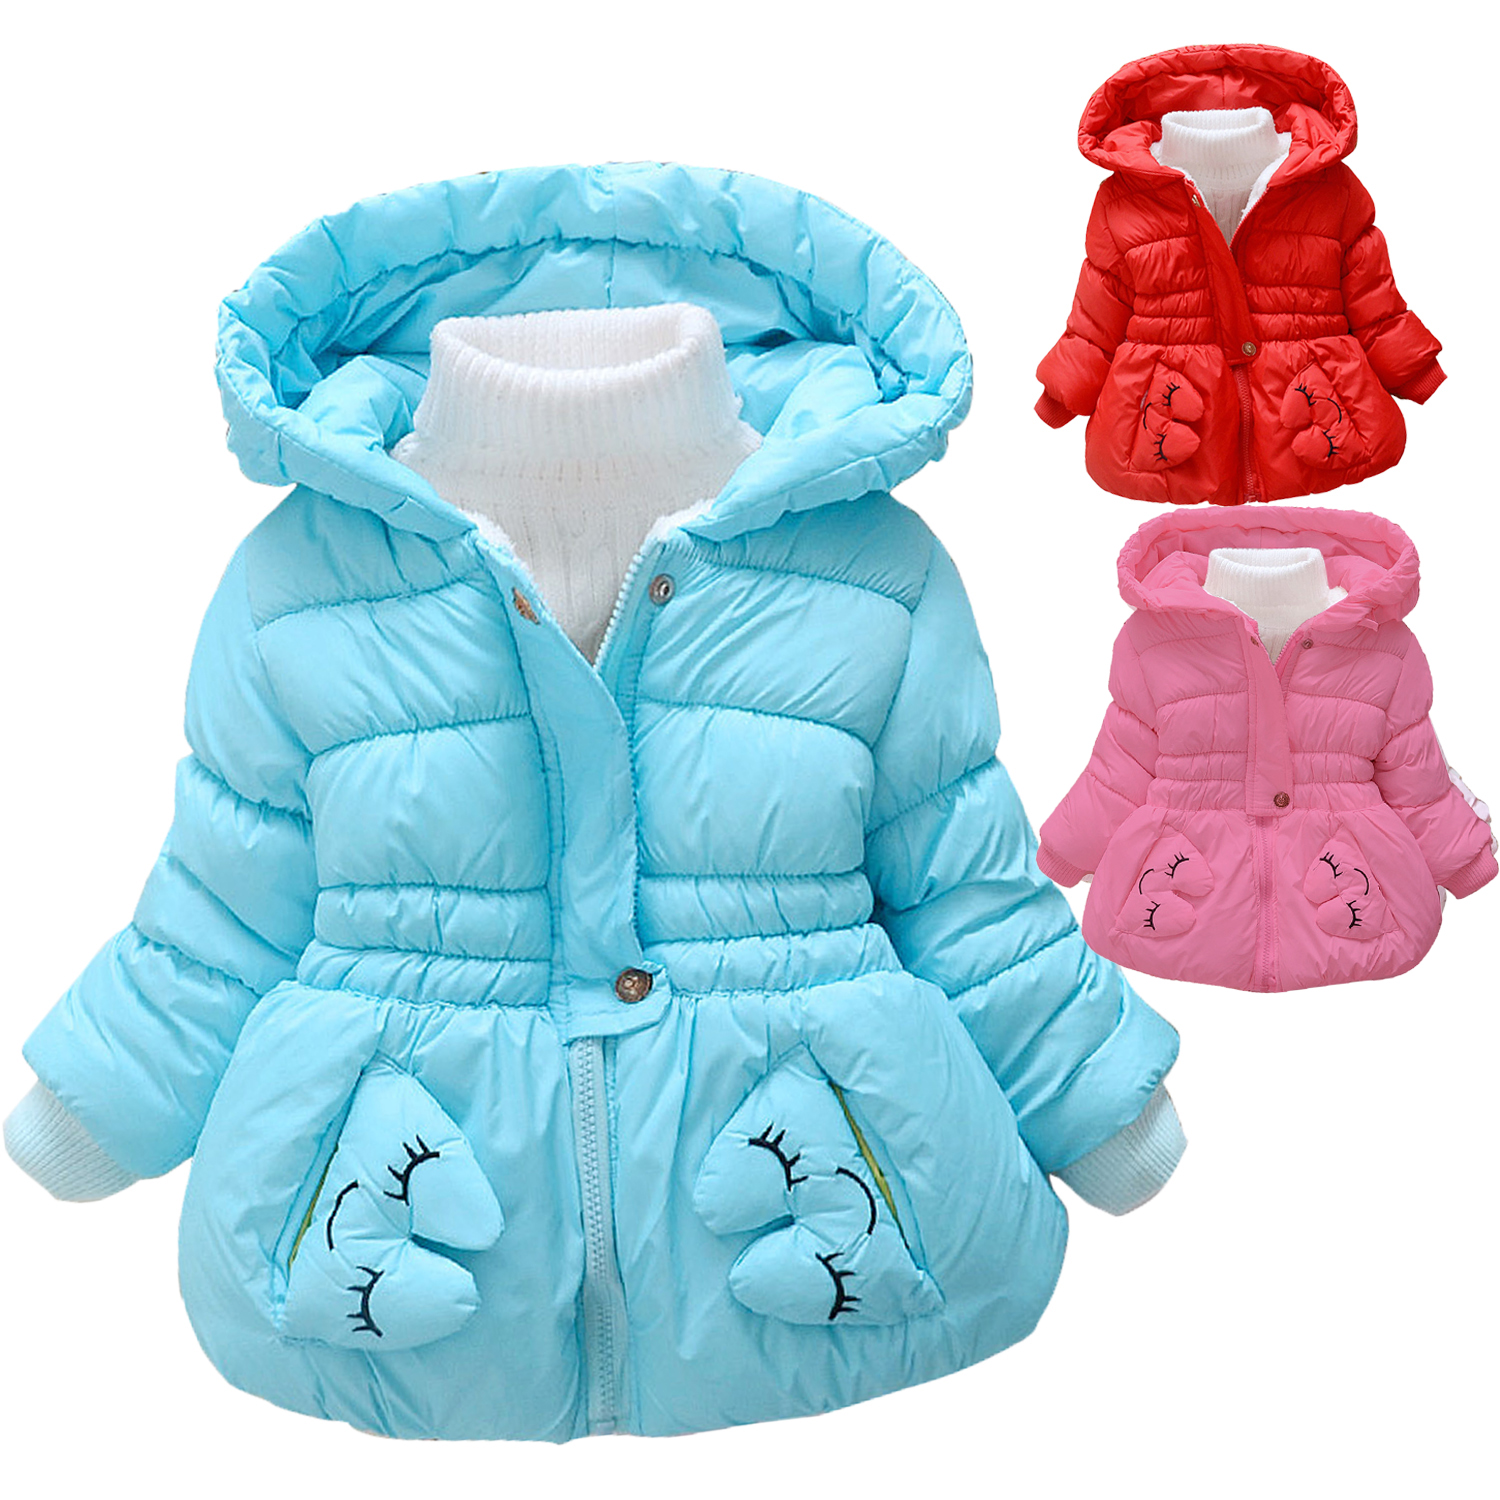 Подробнее о Baby Girls Jacket Casual Hooded Outerwear Girls Coat Winter Kids Clothing Children Jackets For Girls Fashion Cardigan new 2017 baby boys children outerwear coat fashion kids jackets for boy girls winter jacket warm hooded children clothing